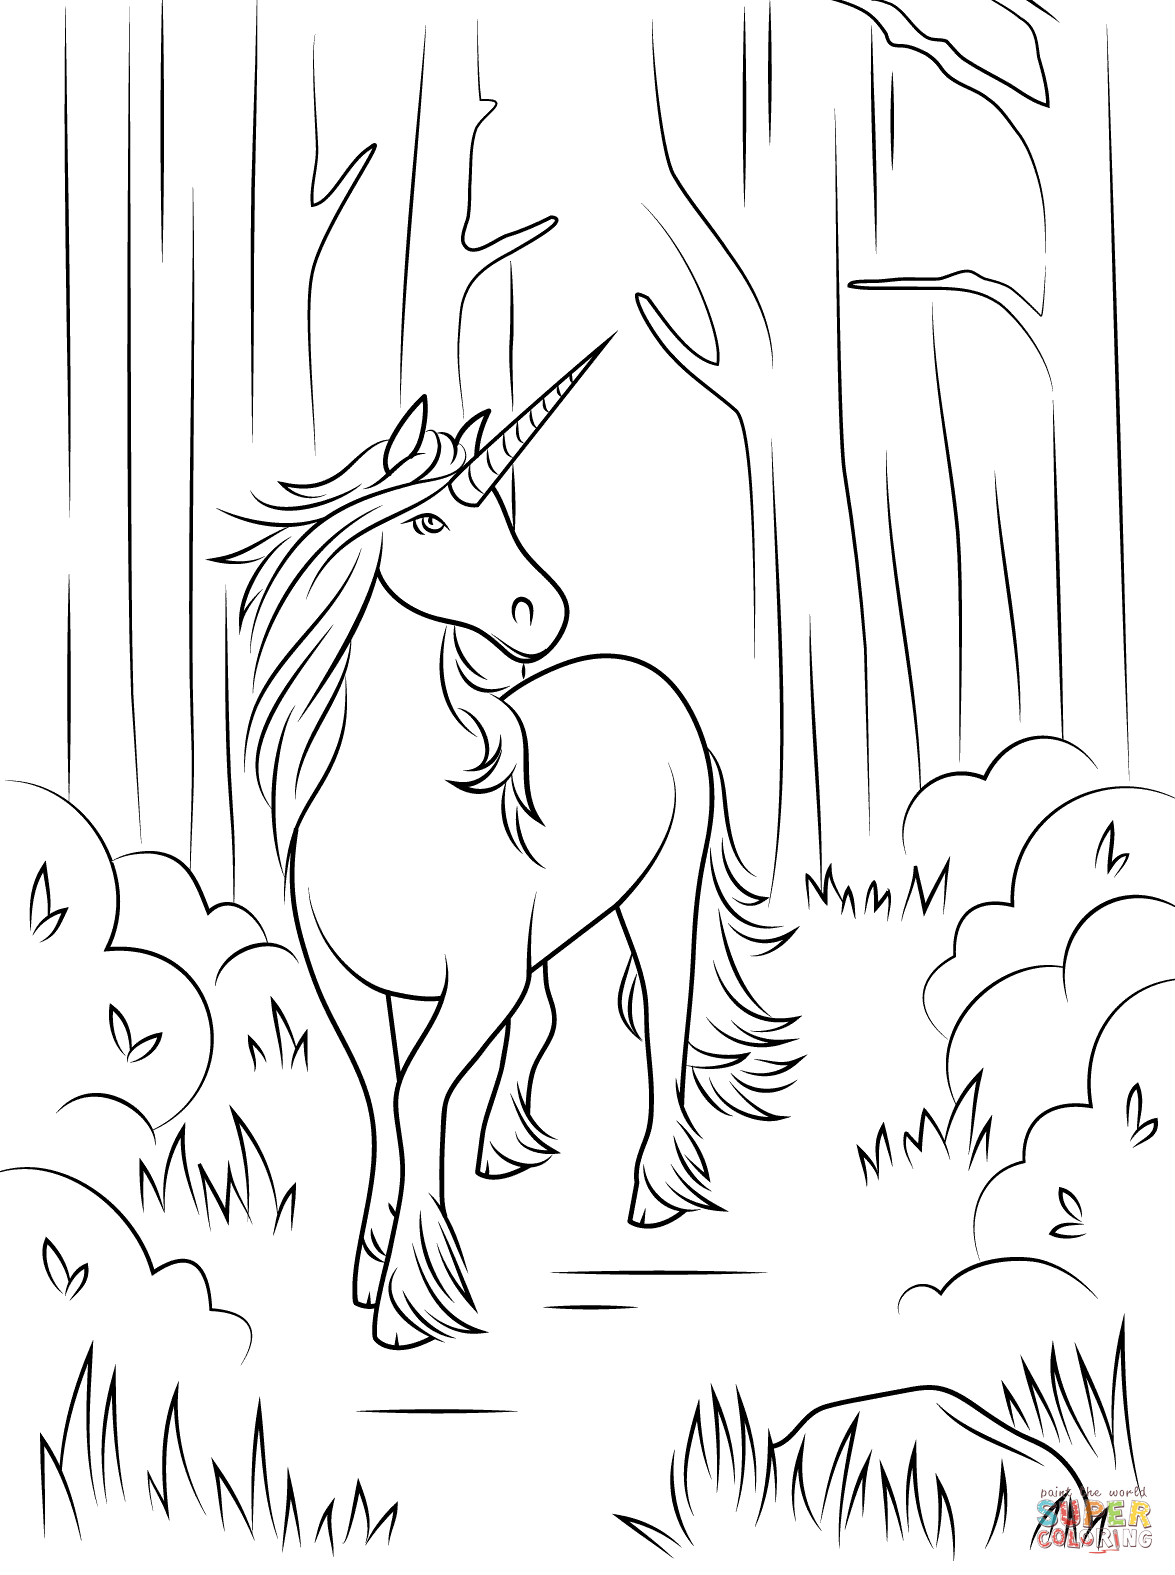 Unicorn6.png